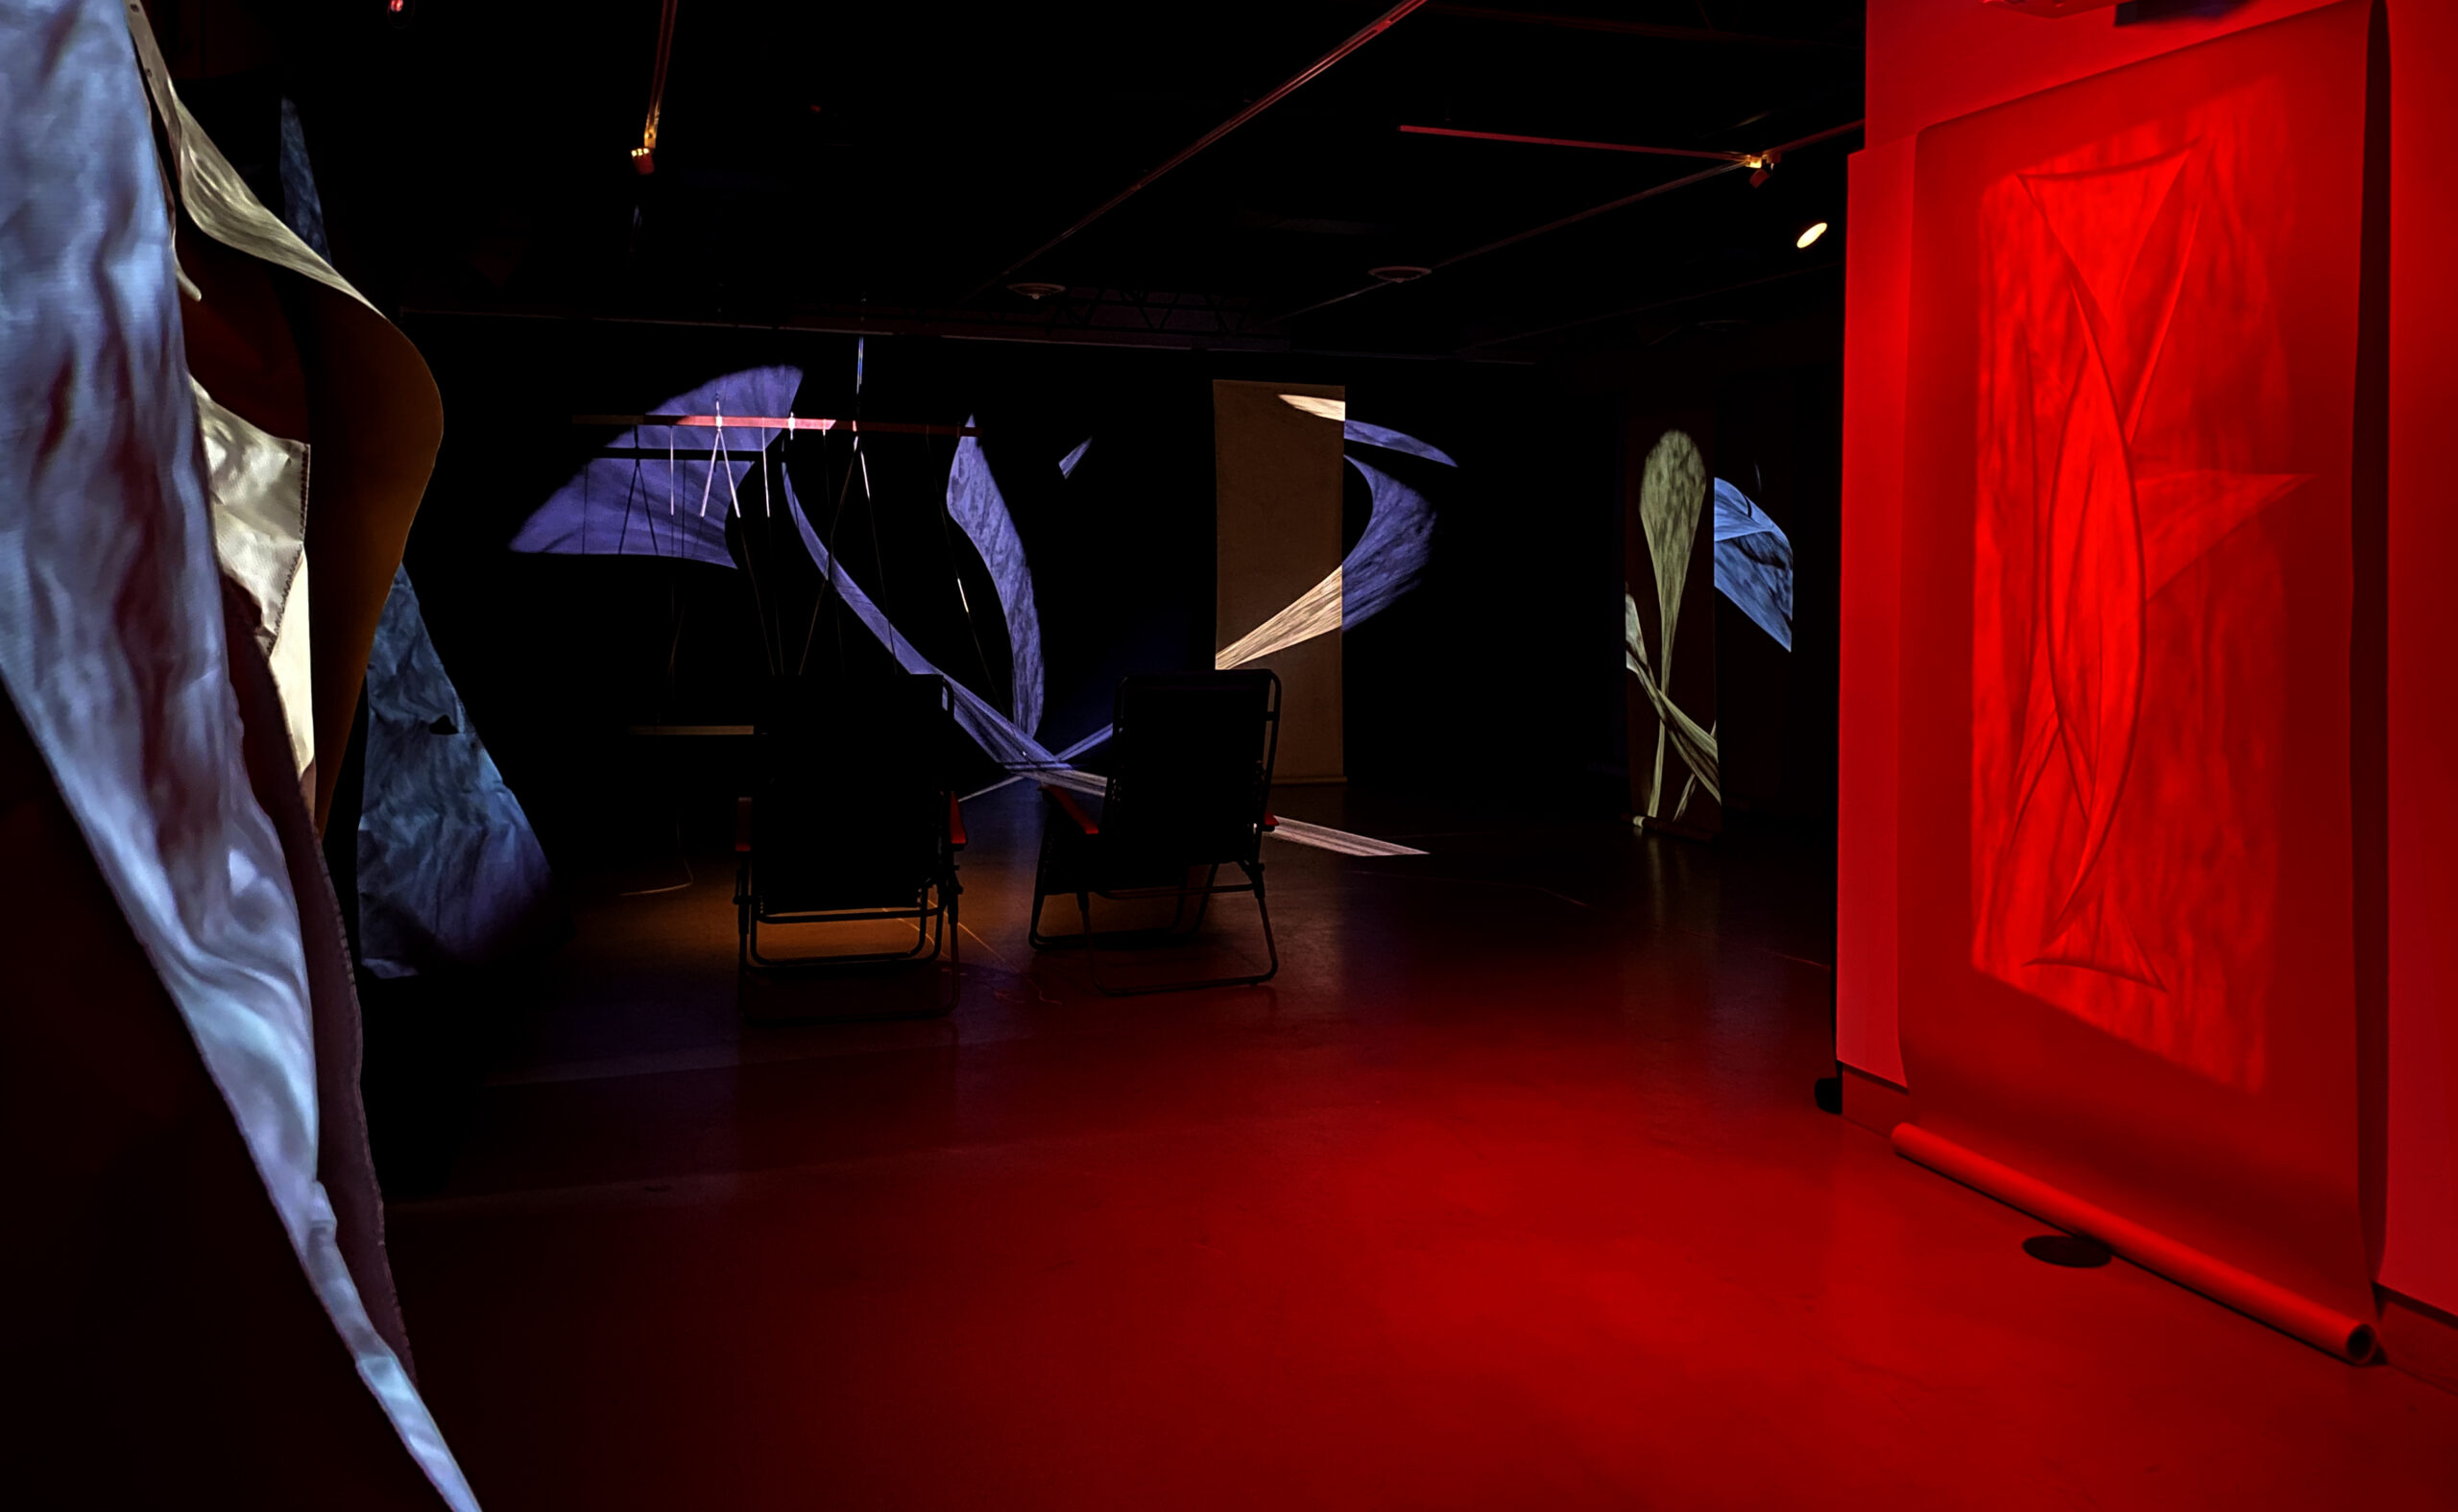 Dark room with projected pattern of purple and gold light, wash of red light on floor and wall, and two chairs in shadow.